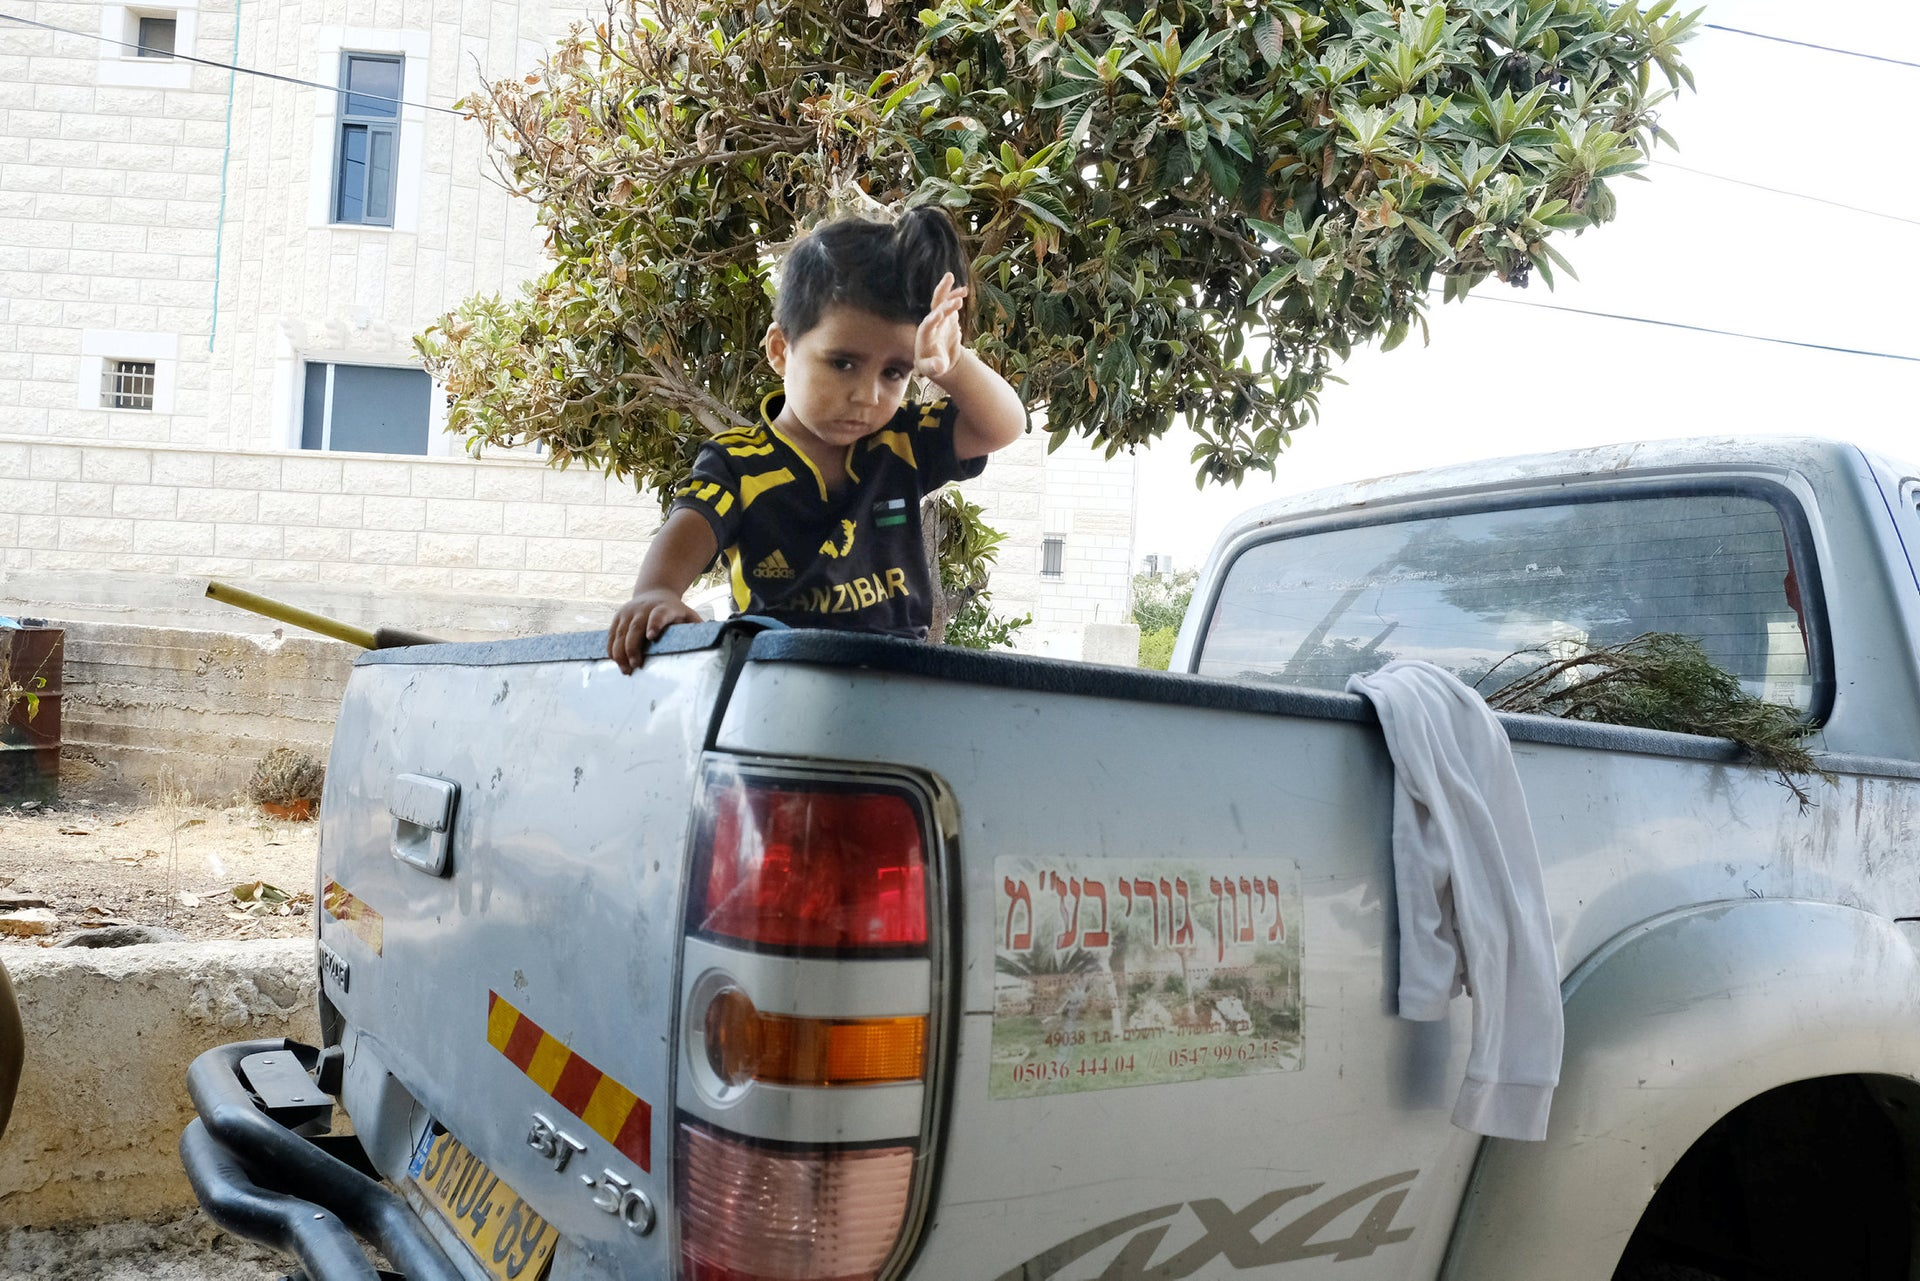 Raed Jidallah's 3-year-old son Mohammed, in his father's truck.